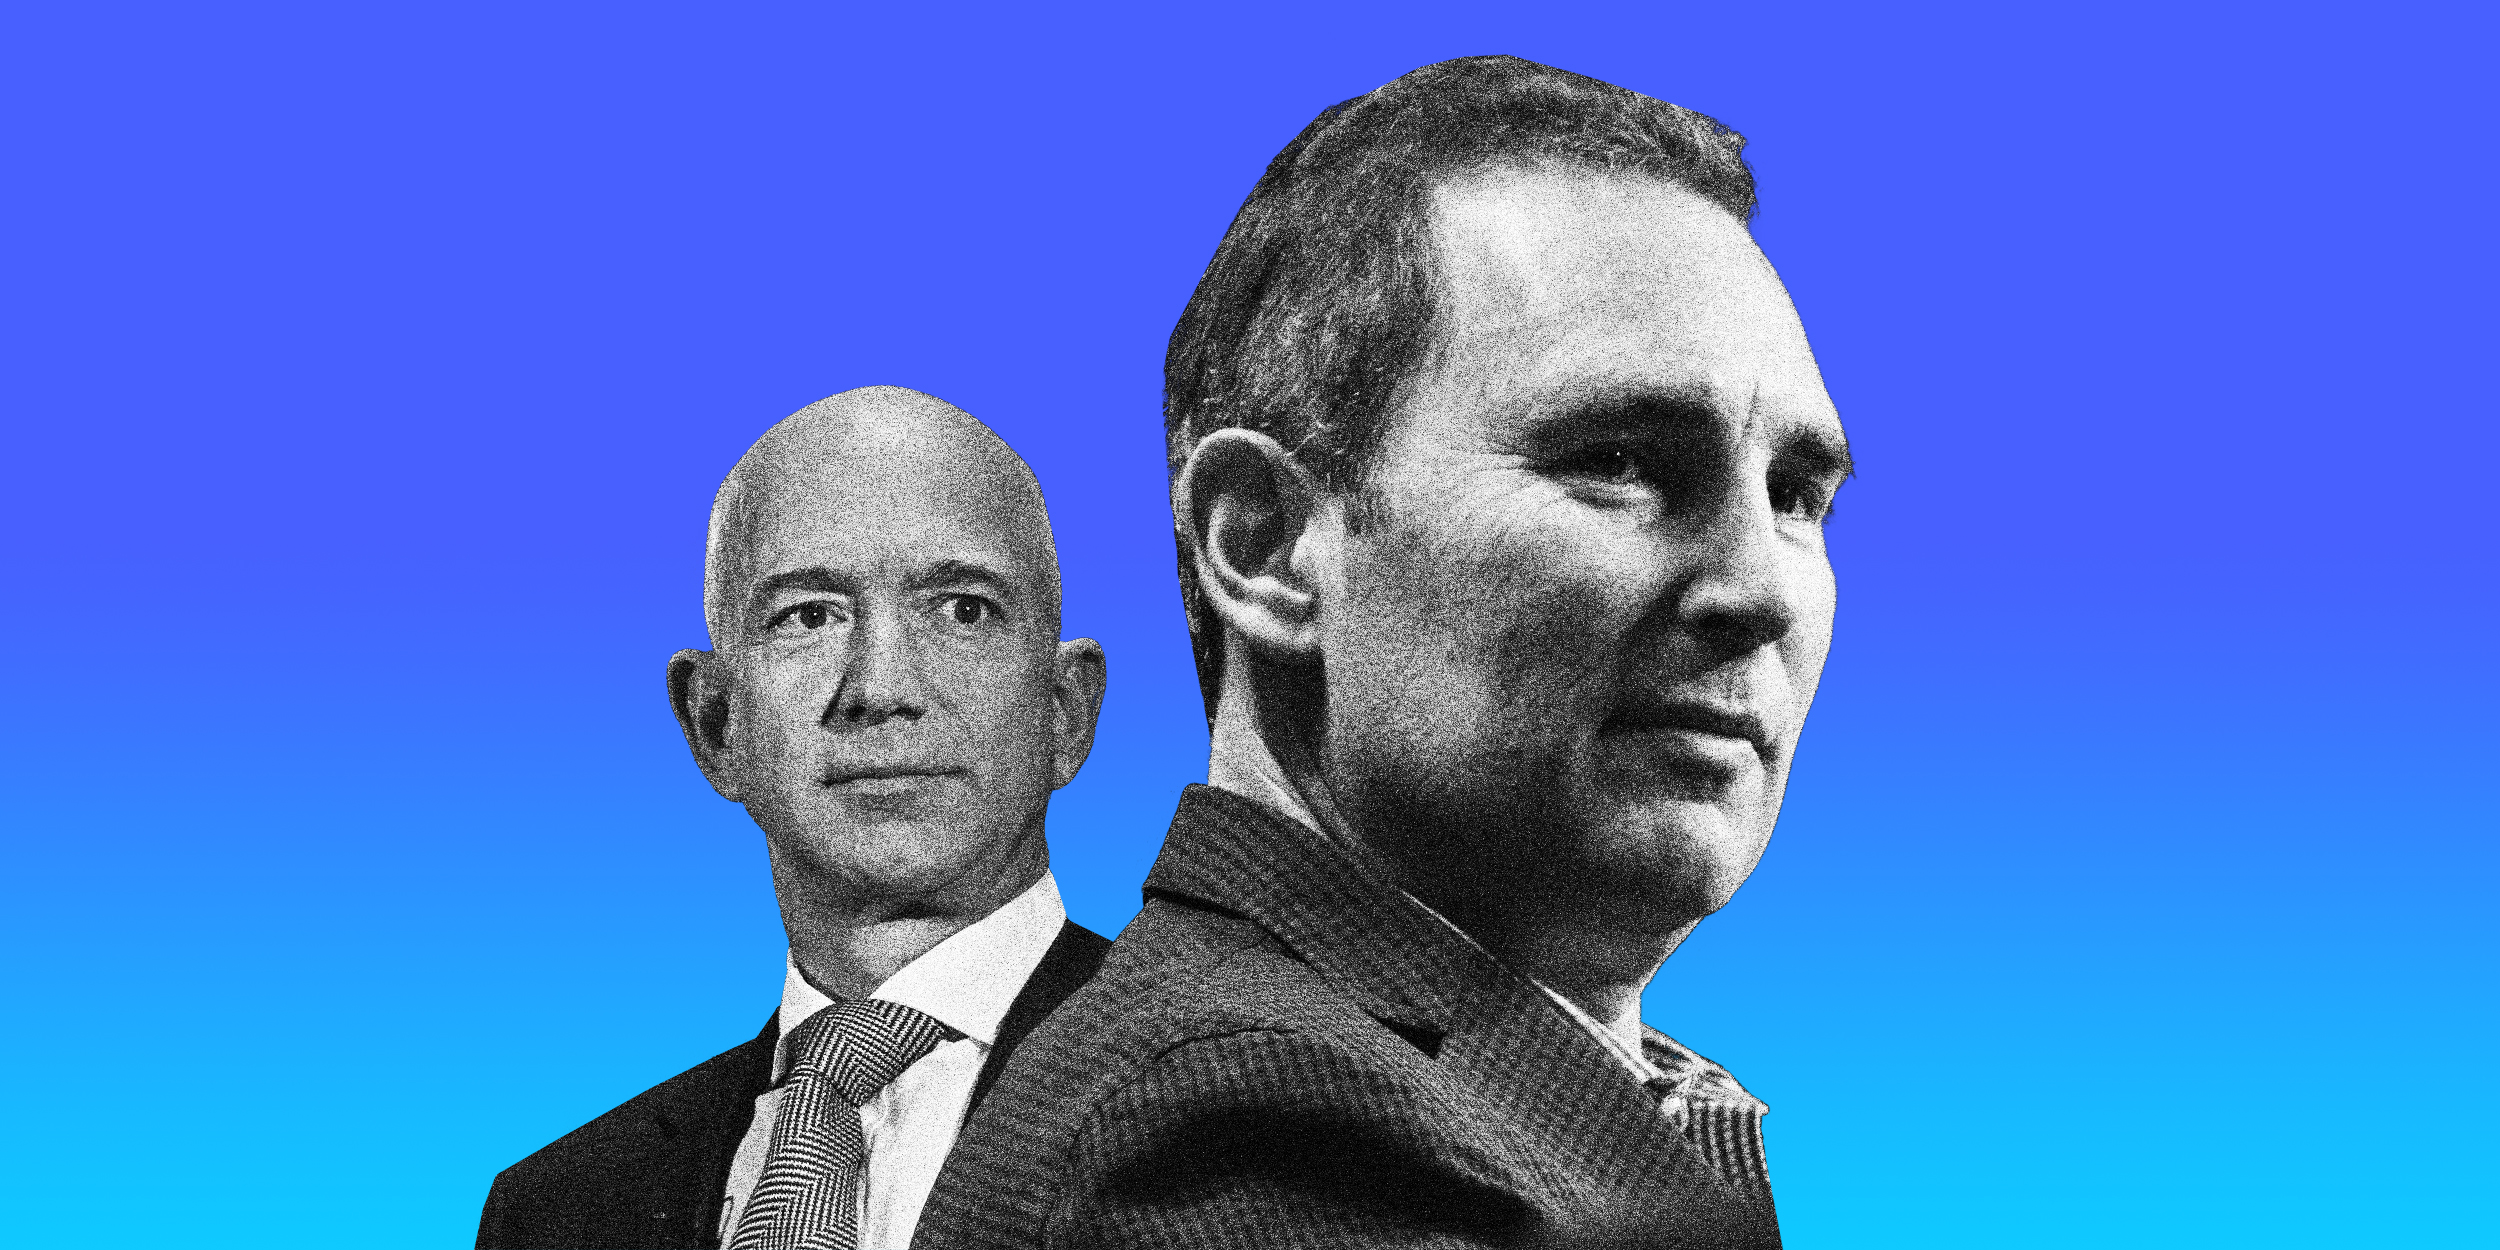 Jeff Bezos Steps Down As CEO of Amazon | Andy Jassy